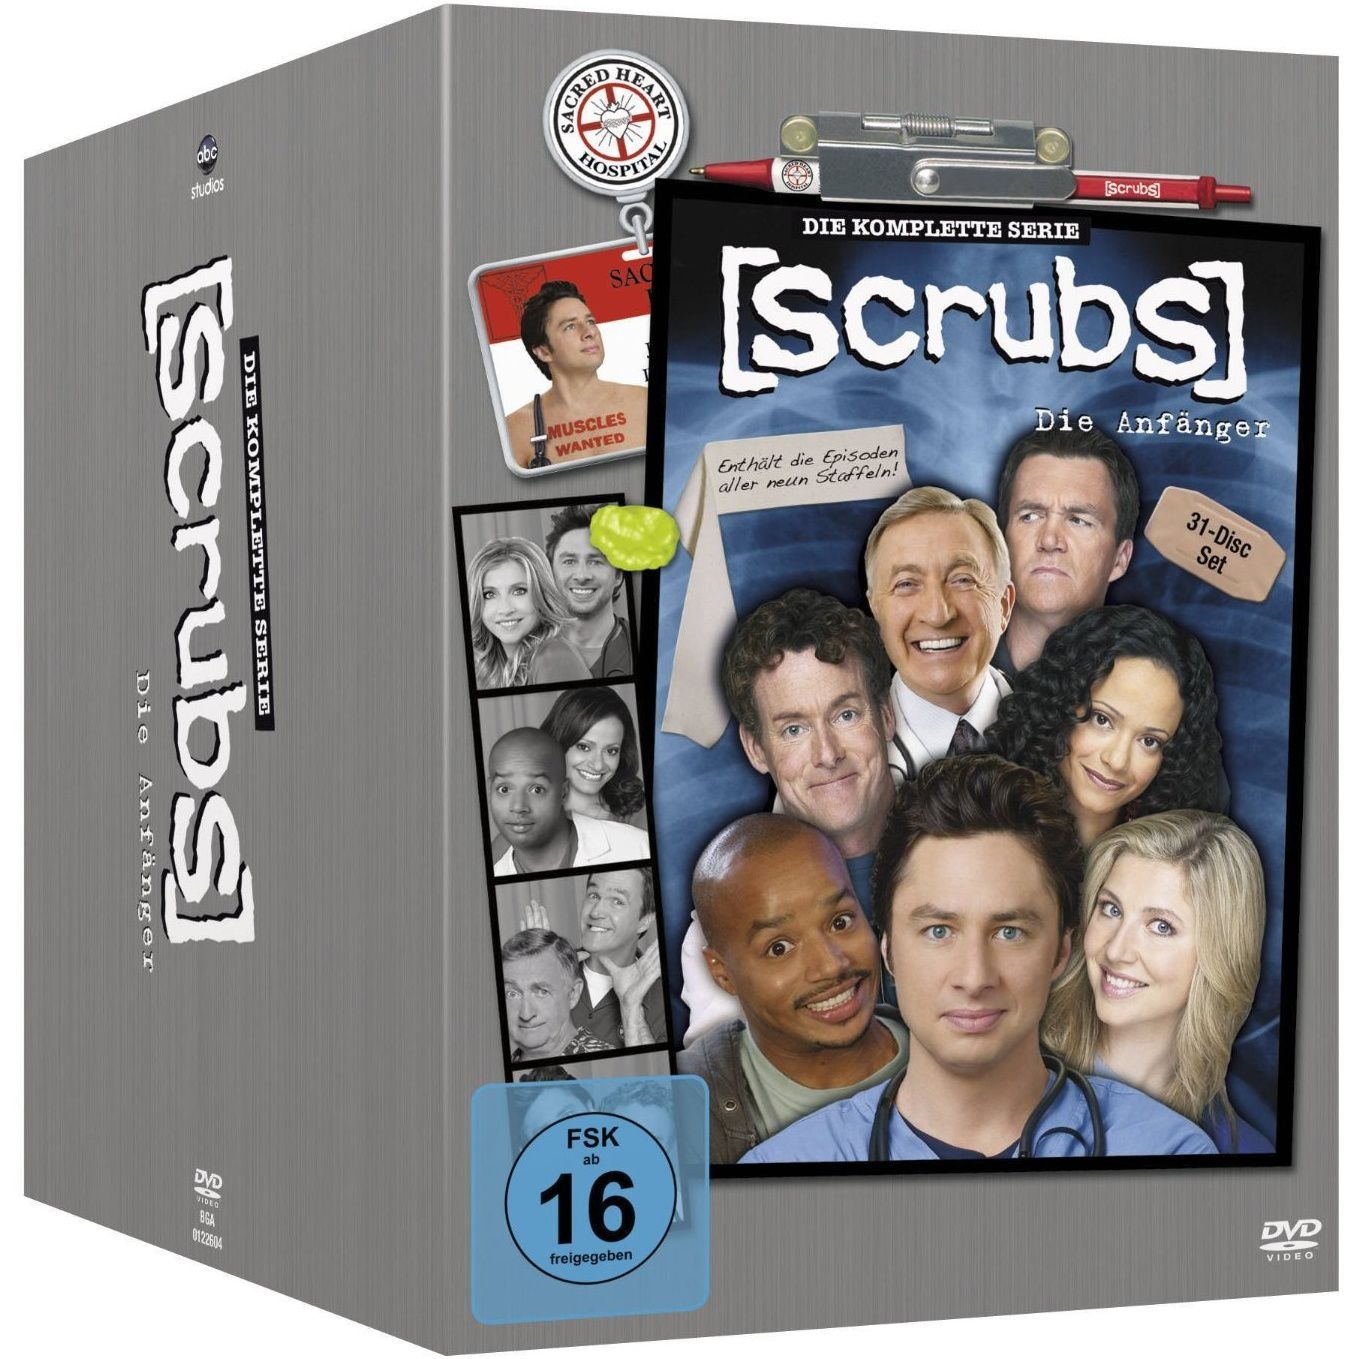 Scrubs, l'intégrale totale en dvd à 50€ only !